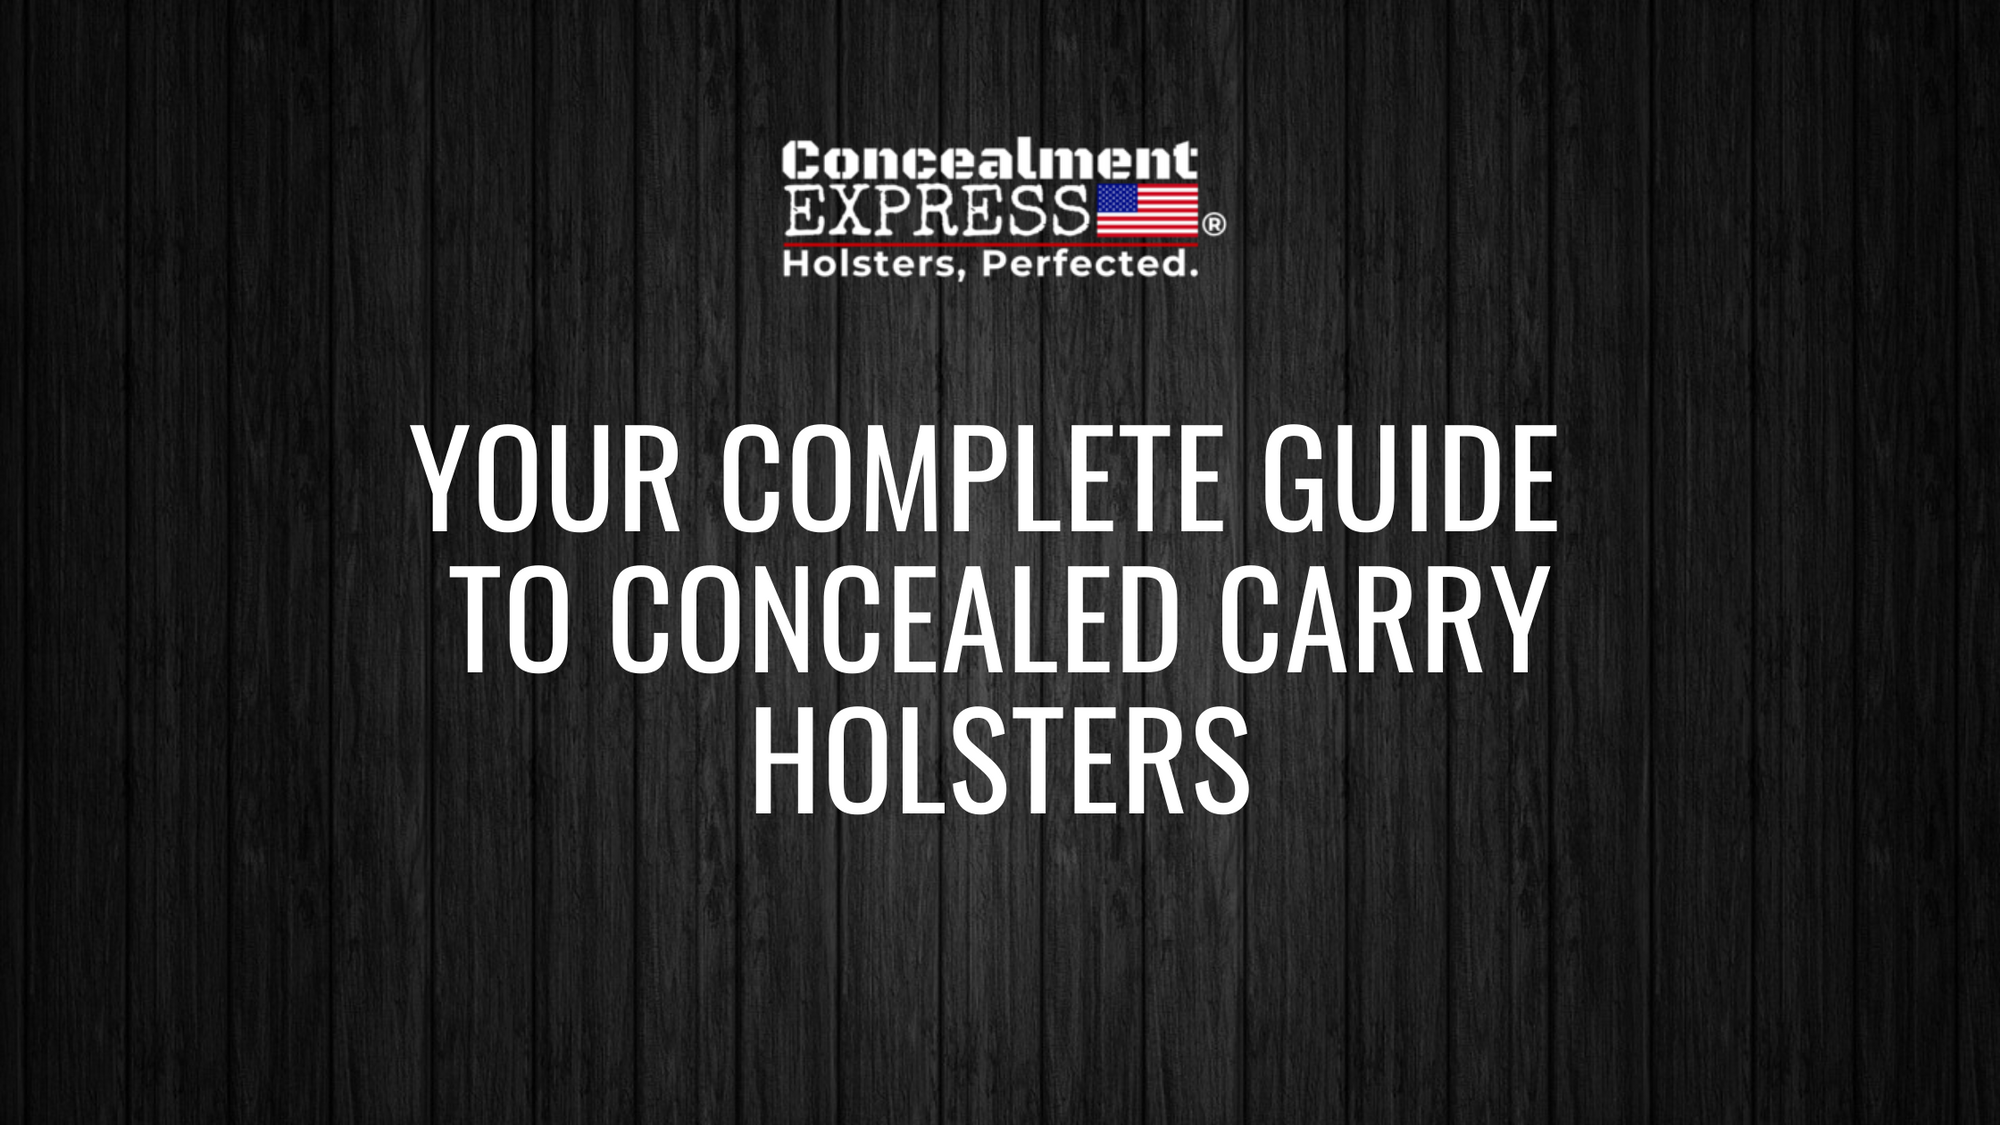 Your Complete Guide to Concealed Carry Holsters